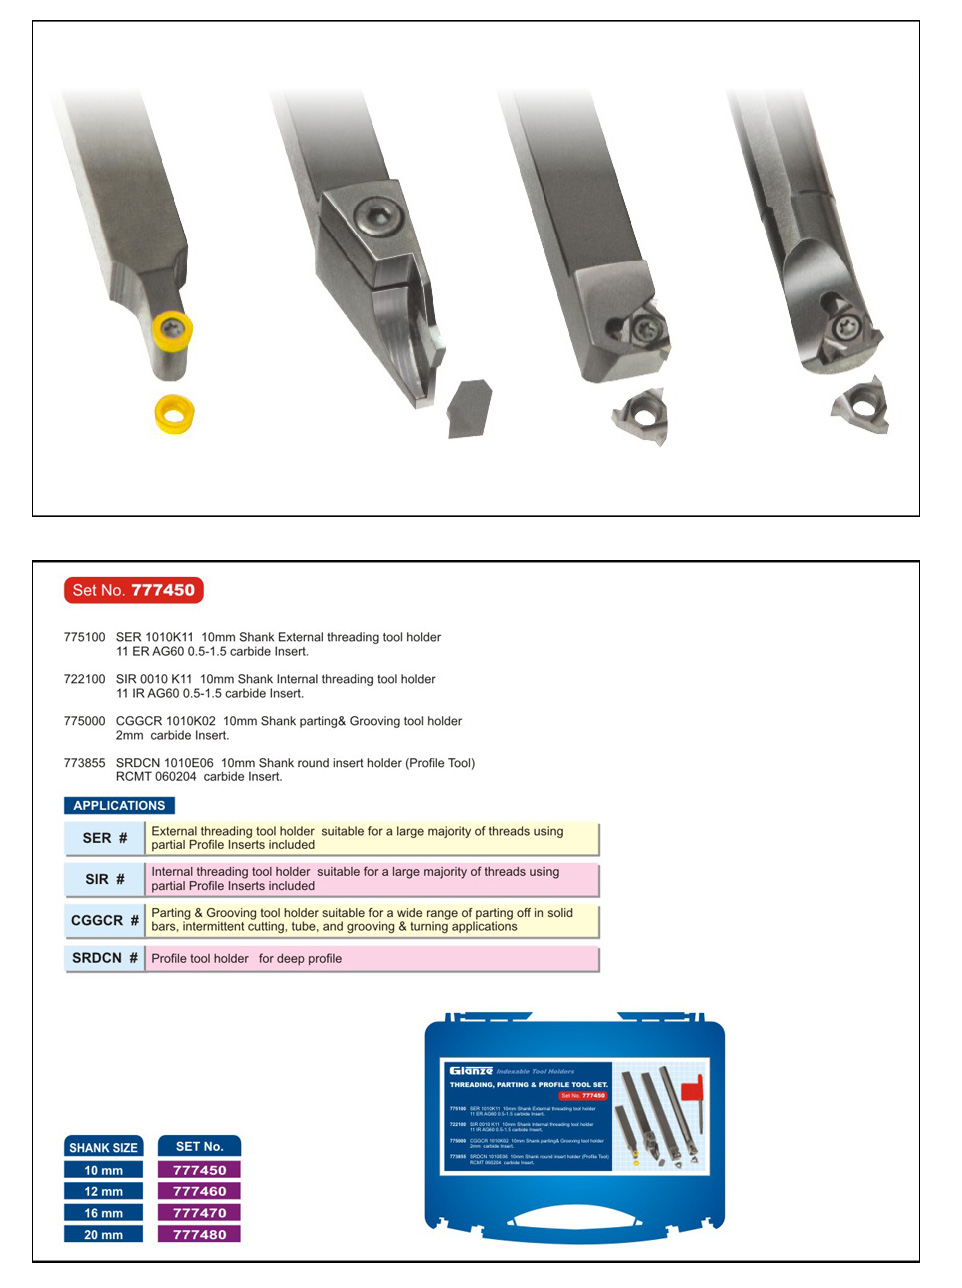 'Glanze - Industrial Tools Manufacturers India' from the web at 'http://www.glanze.com/indexable-tool-holders/../products/milling-cutters/mc-threading-parting.jpg'